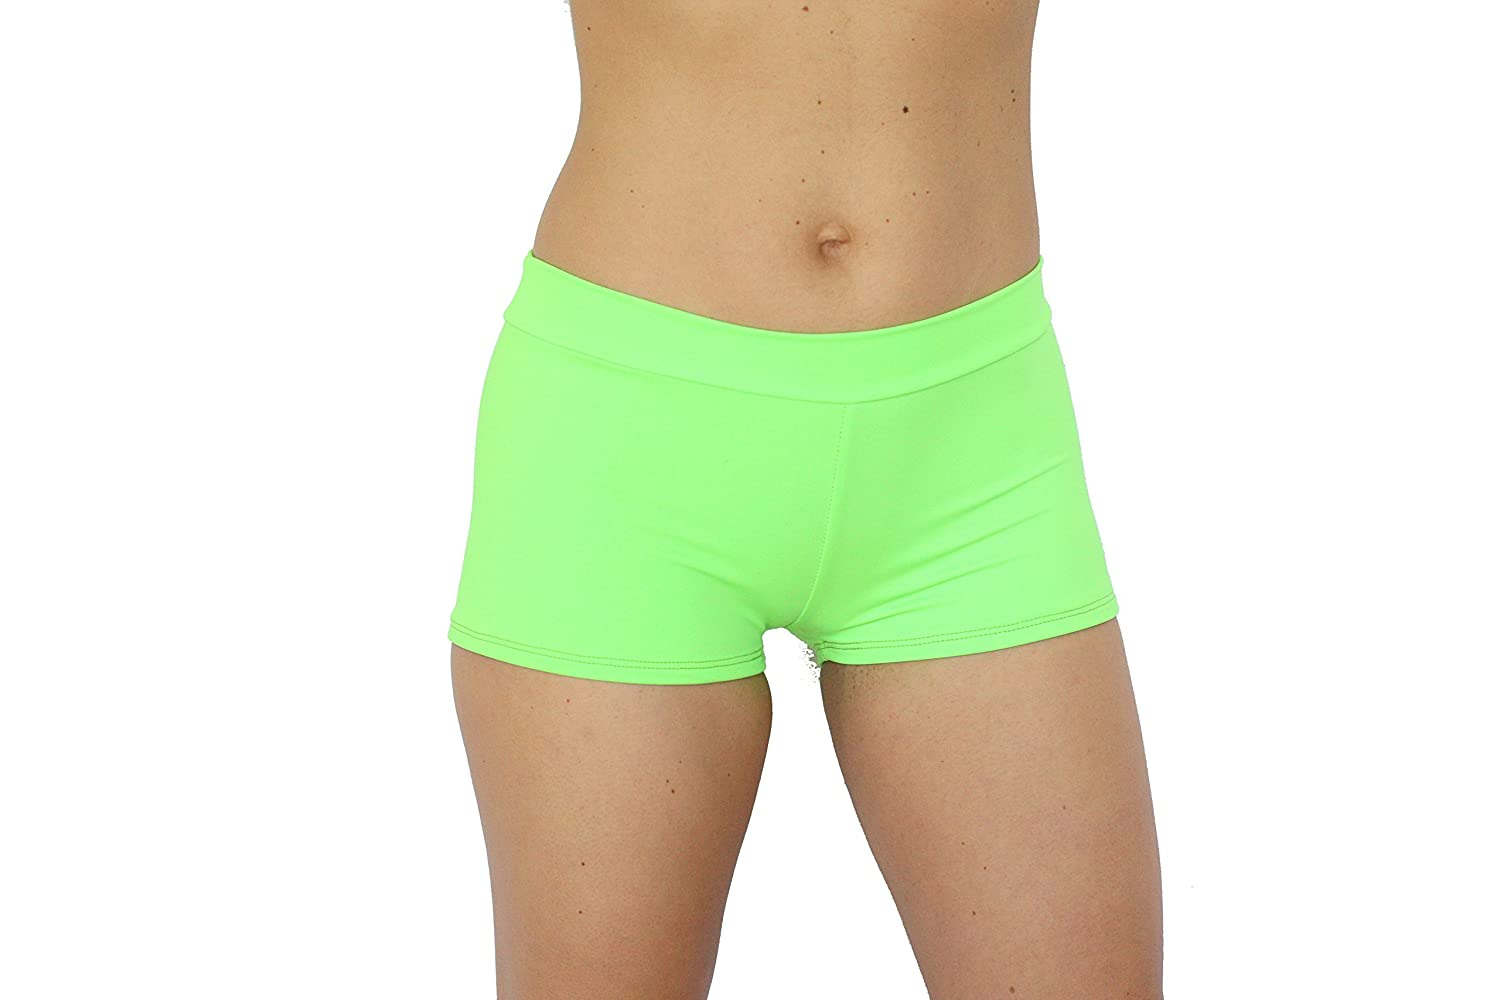 Ujena Fit Sporty Active Green Neon Boy Short Booty Short